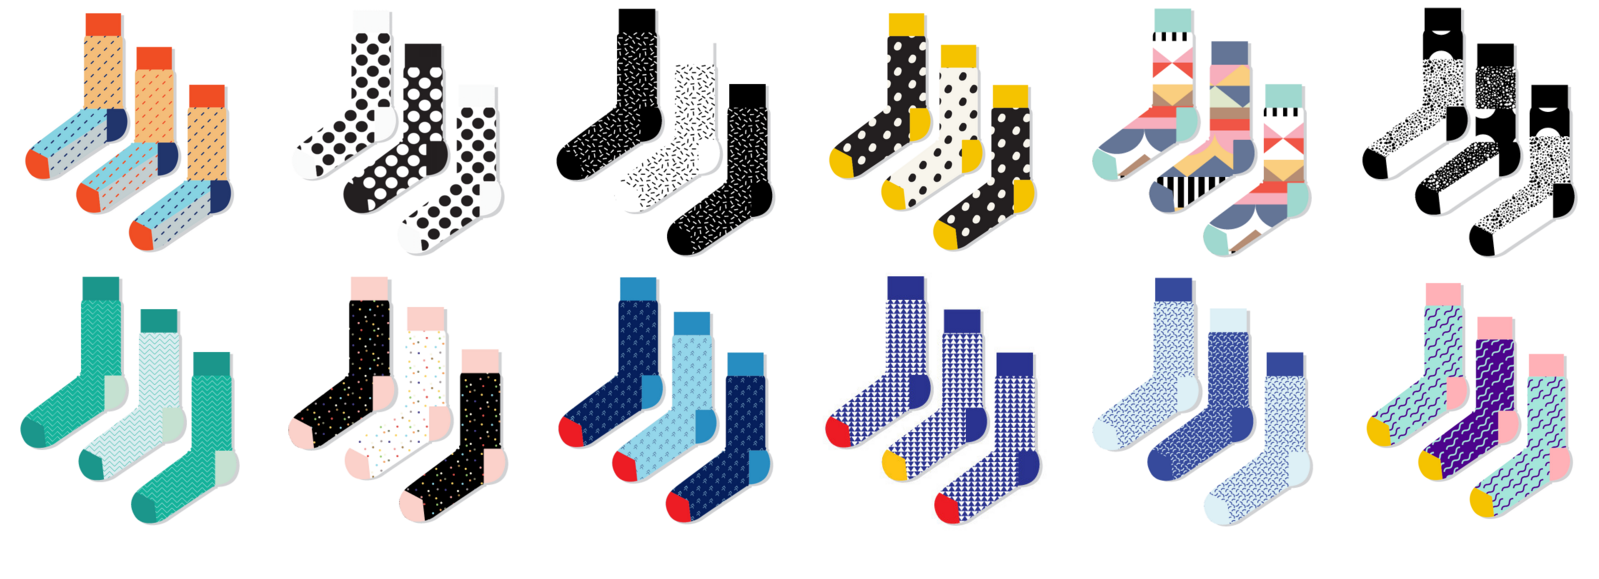 Father's Day gift guide socks